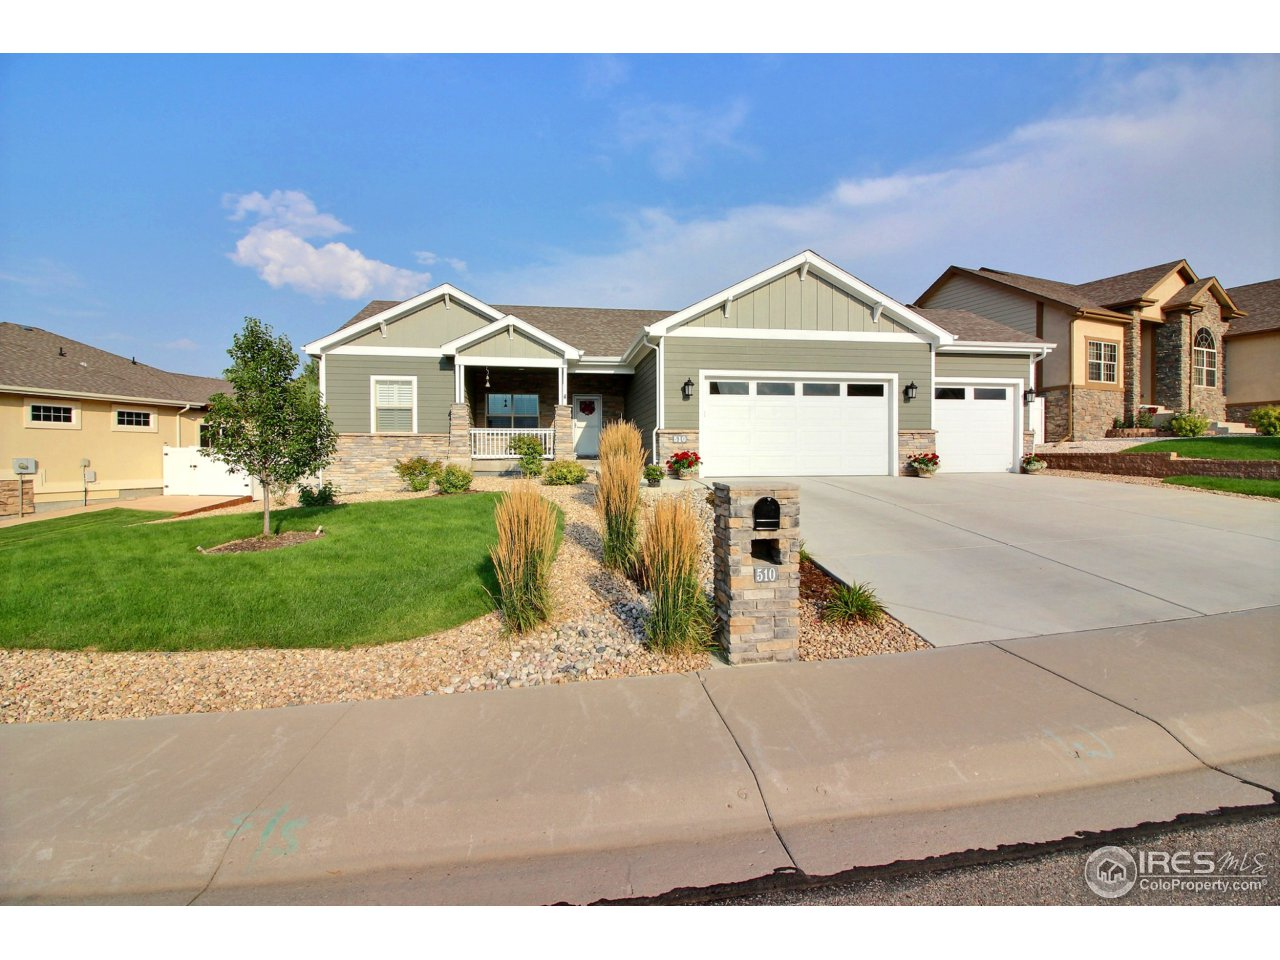 510 58th Ave, Greeley CO 80634